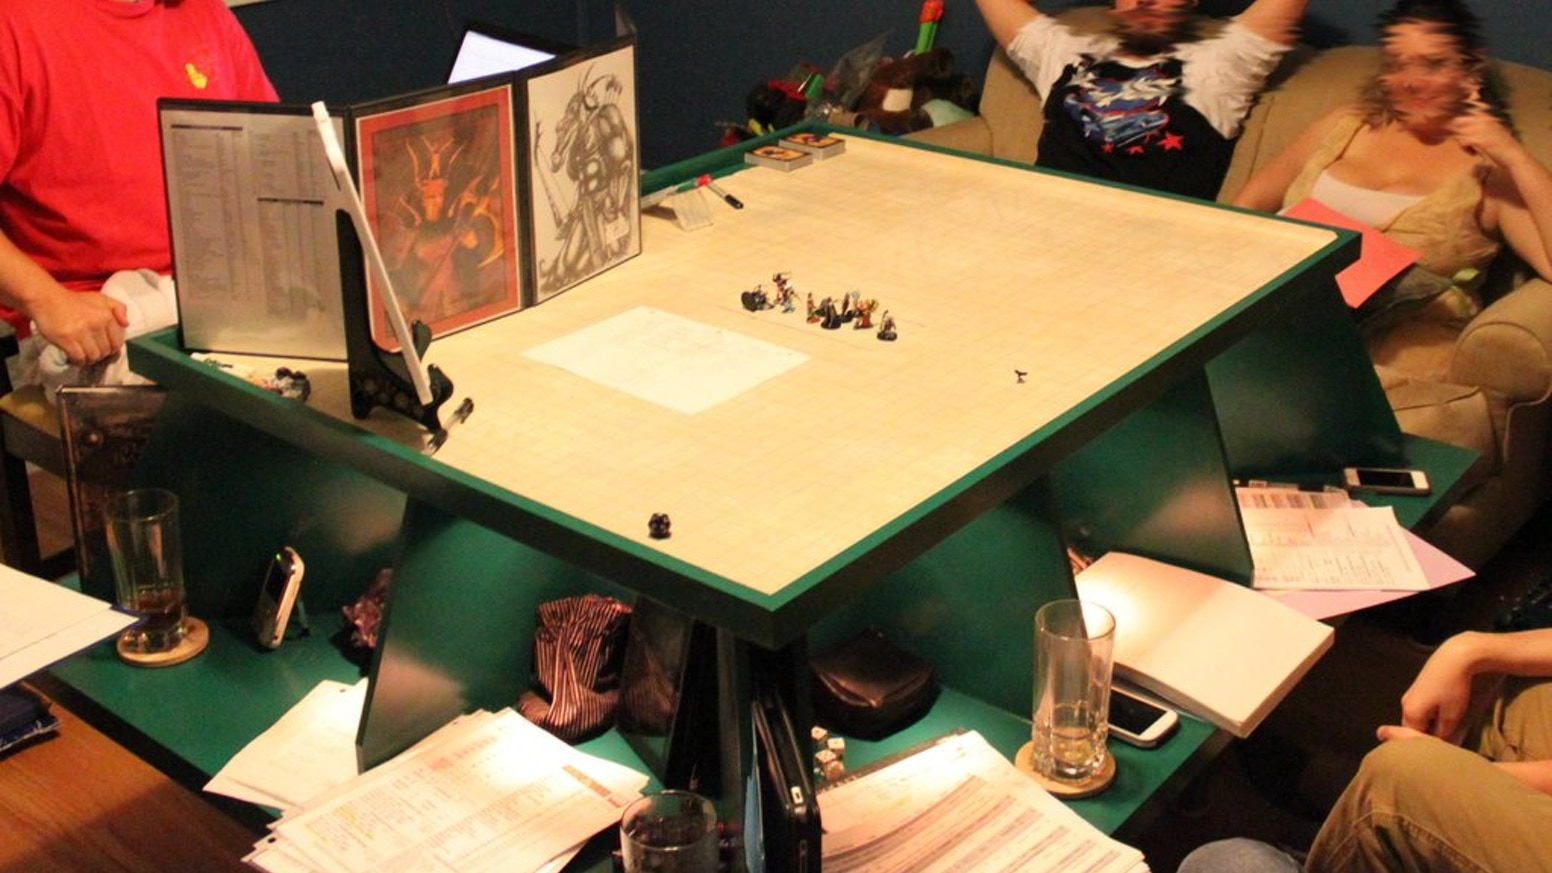 We are raising money to create plans based on the original RPG gaming table topper.